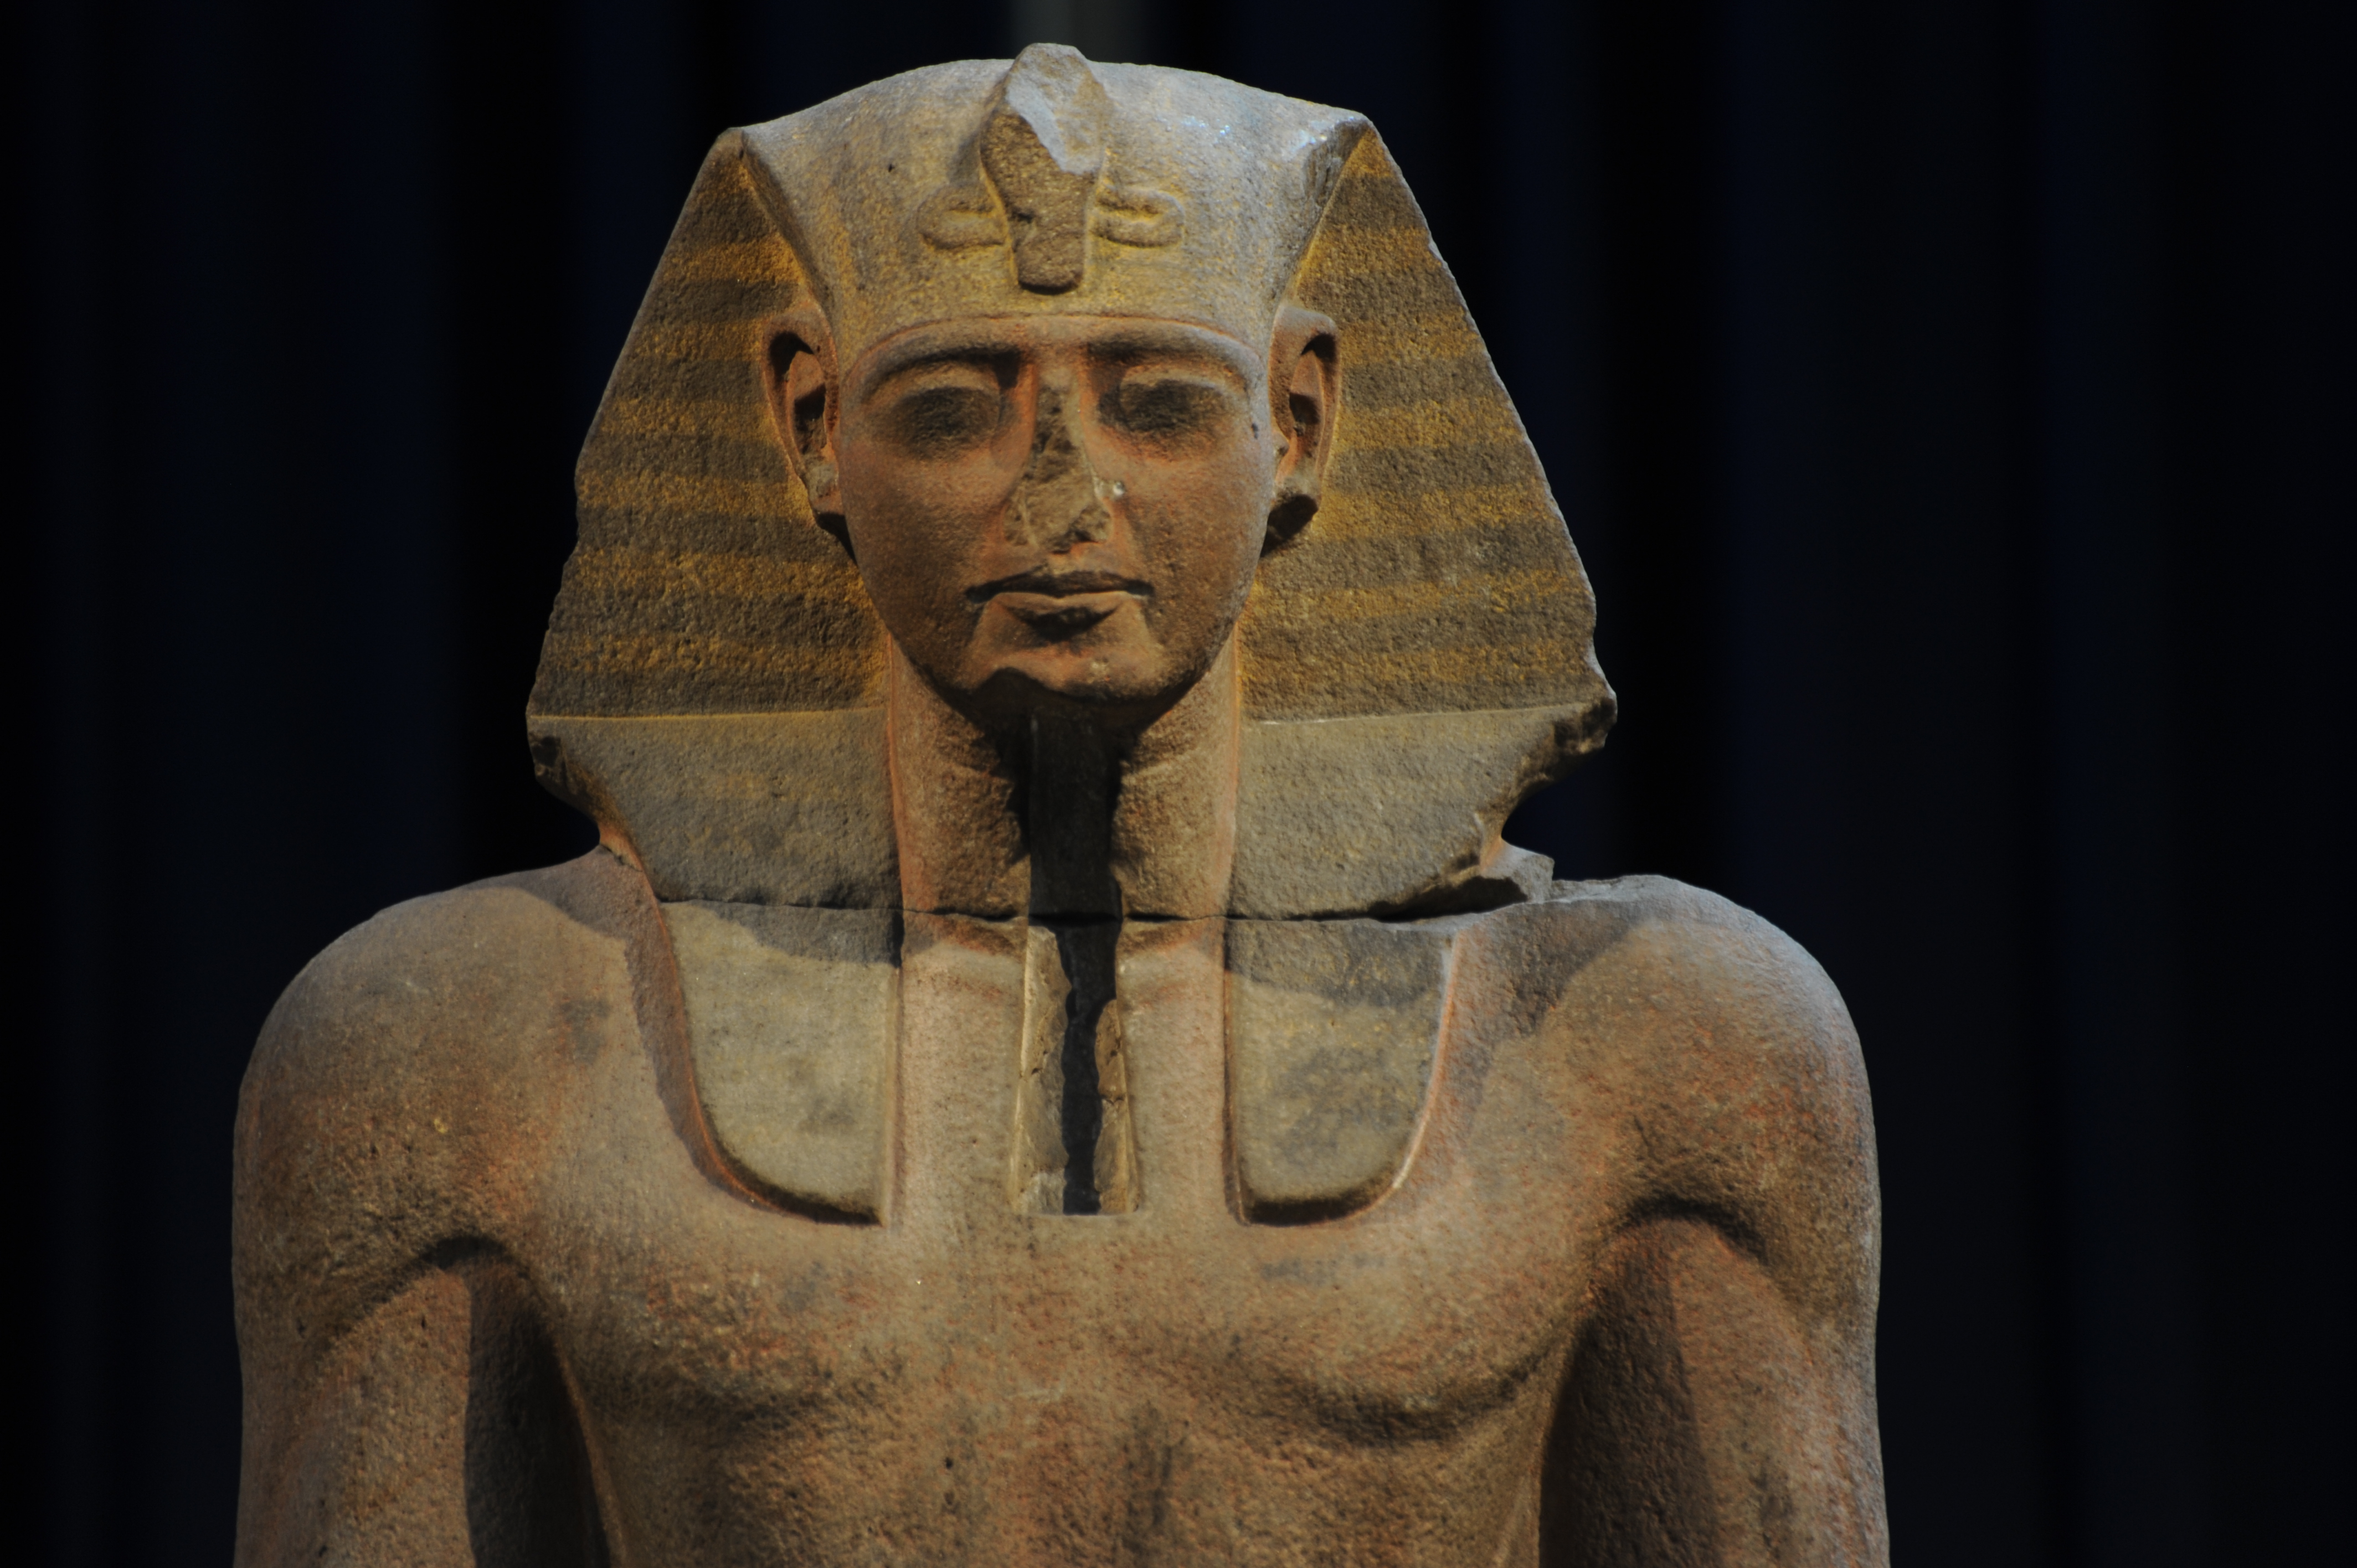 the king ramesses ii in egypt history essay Step 2 fold down the top edges of the paper to  top was the king and his family   and metal goods chapter 2 ancient egypt 45 pharaoh farmers and   to show the major accomplishments of ramses ii ramses egyptian empire.